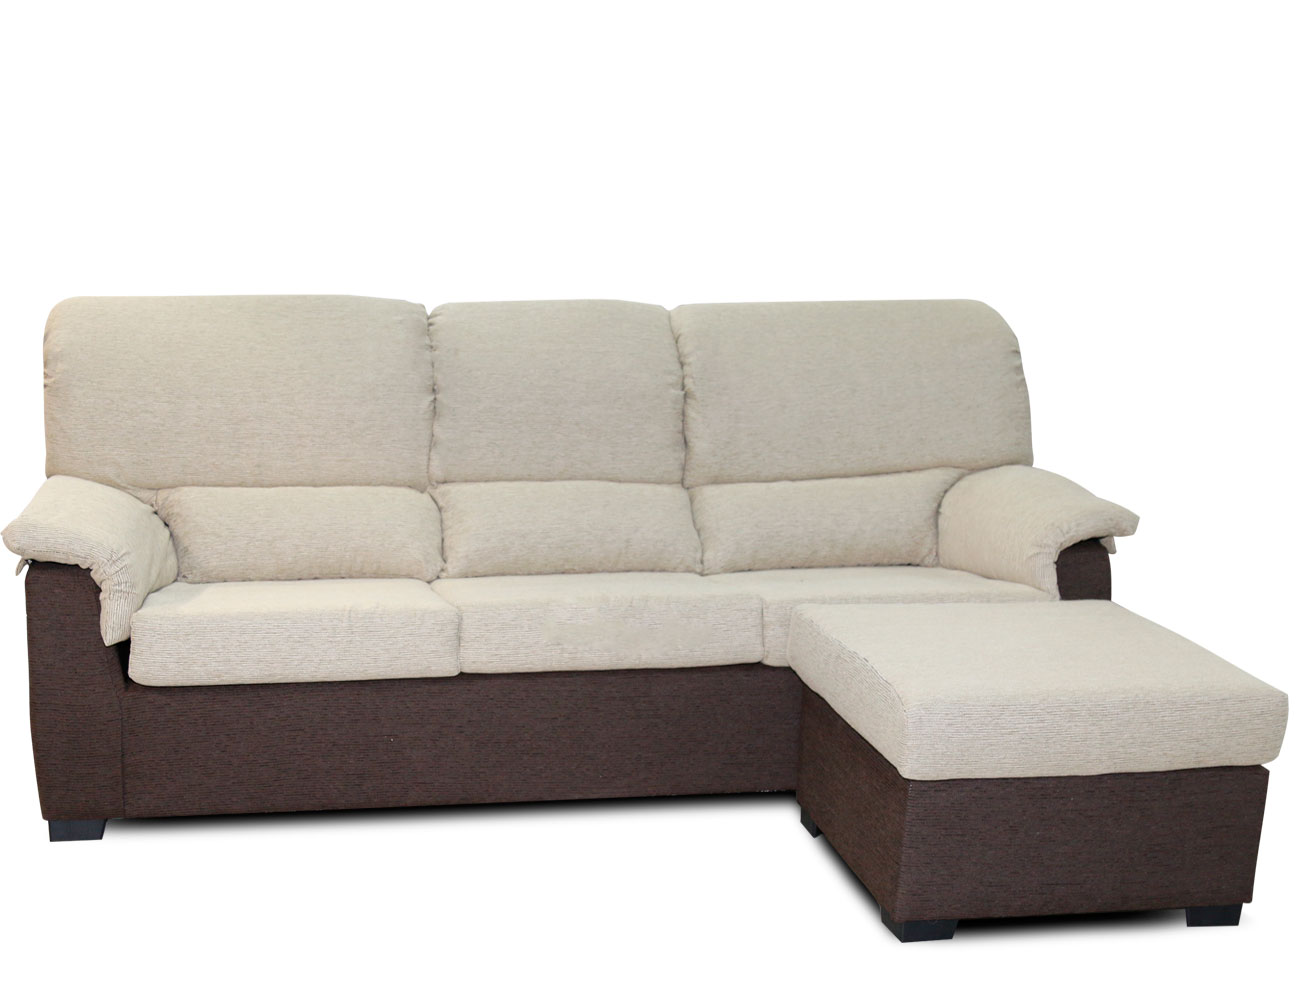 Sofa chaiselongue barato choco beig11